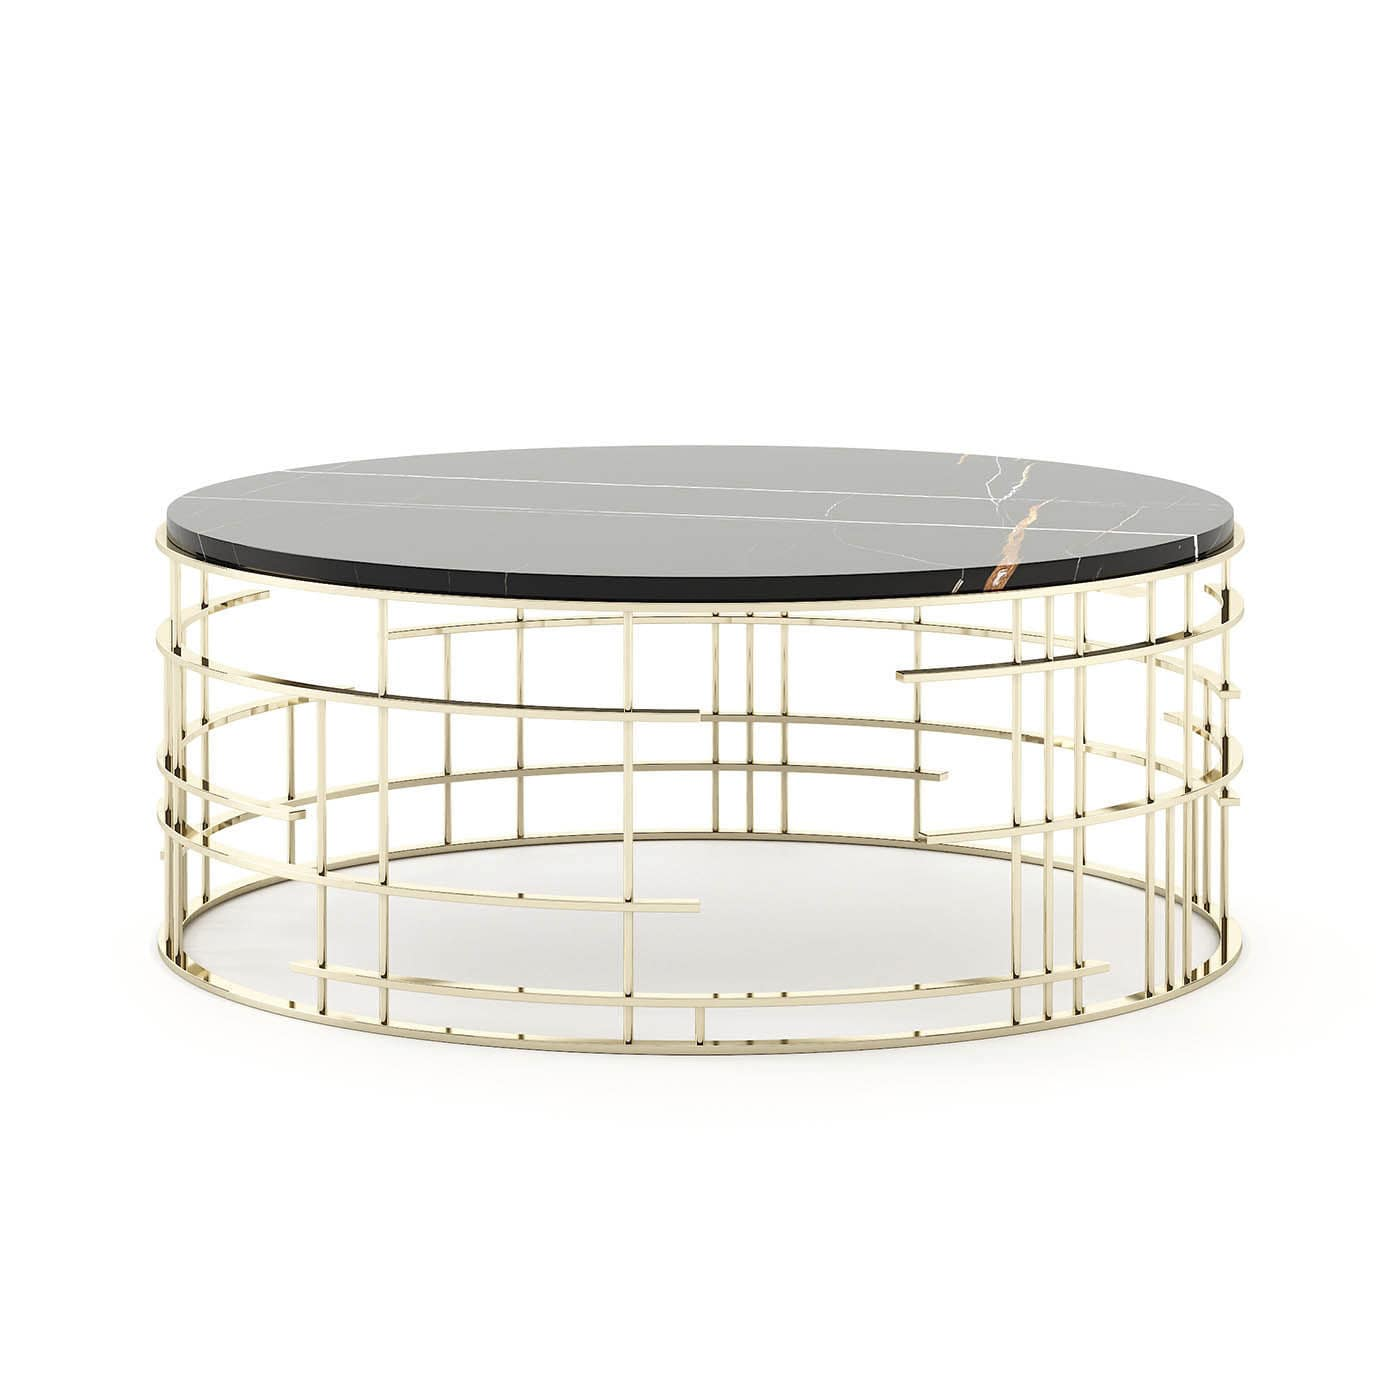 Picture of: Contemporary Coffee Table Mercy Laskasas Wooden Stainless Steel Base Round